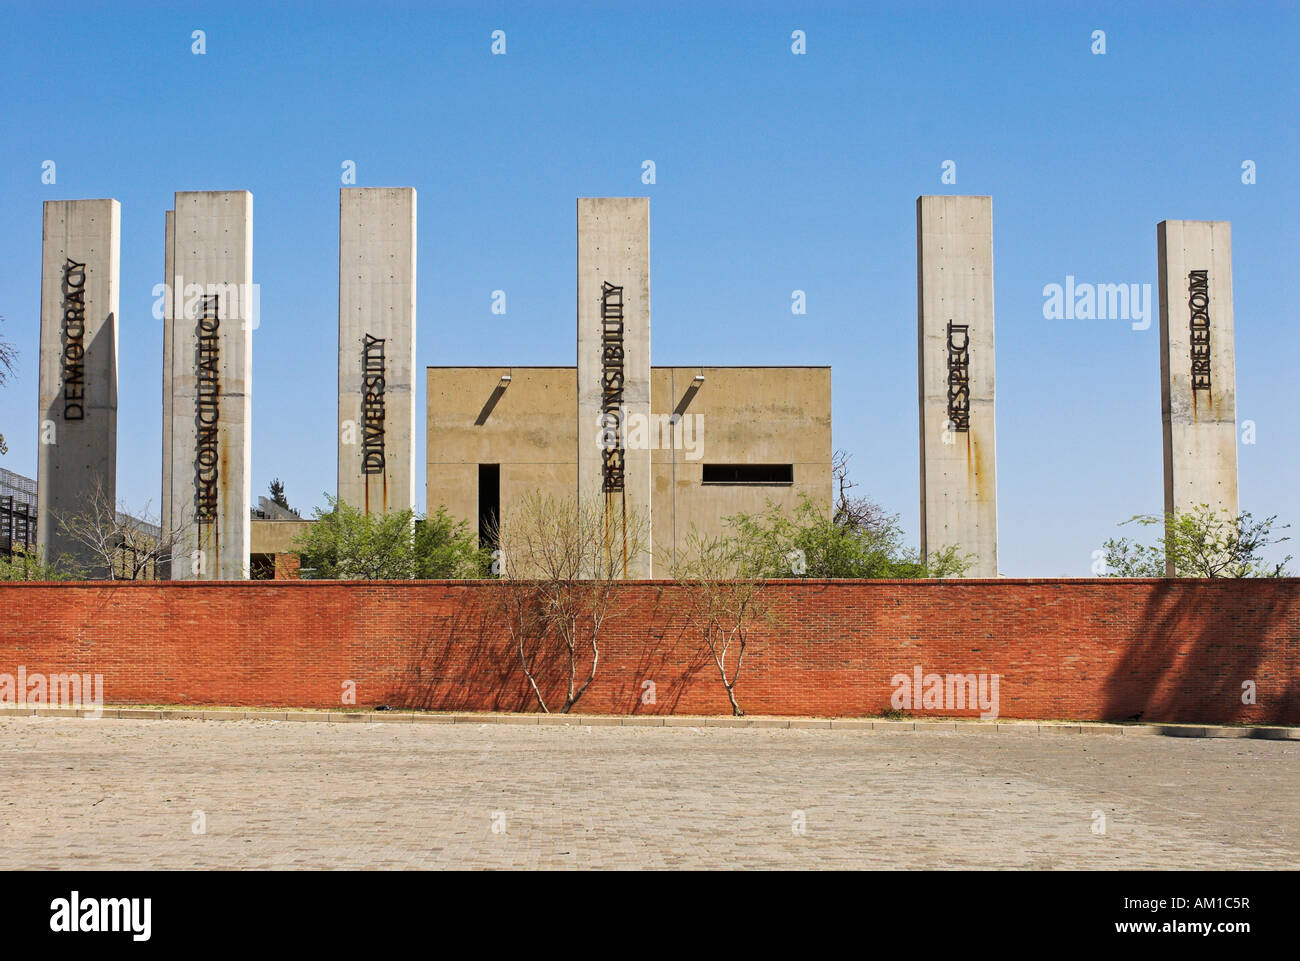 Apartheid Museum, Ormonde, Johannesburg, South Africa, Africa Stock Photo